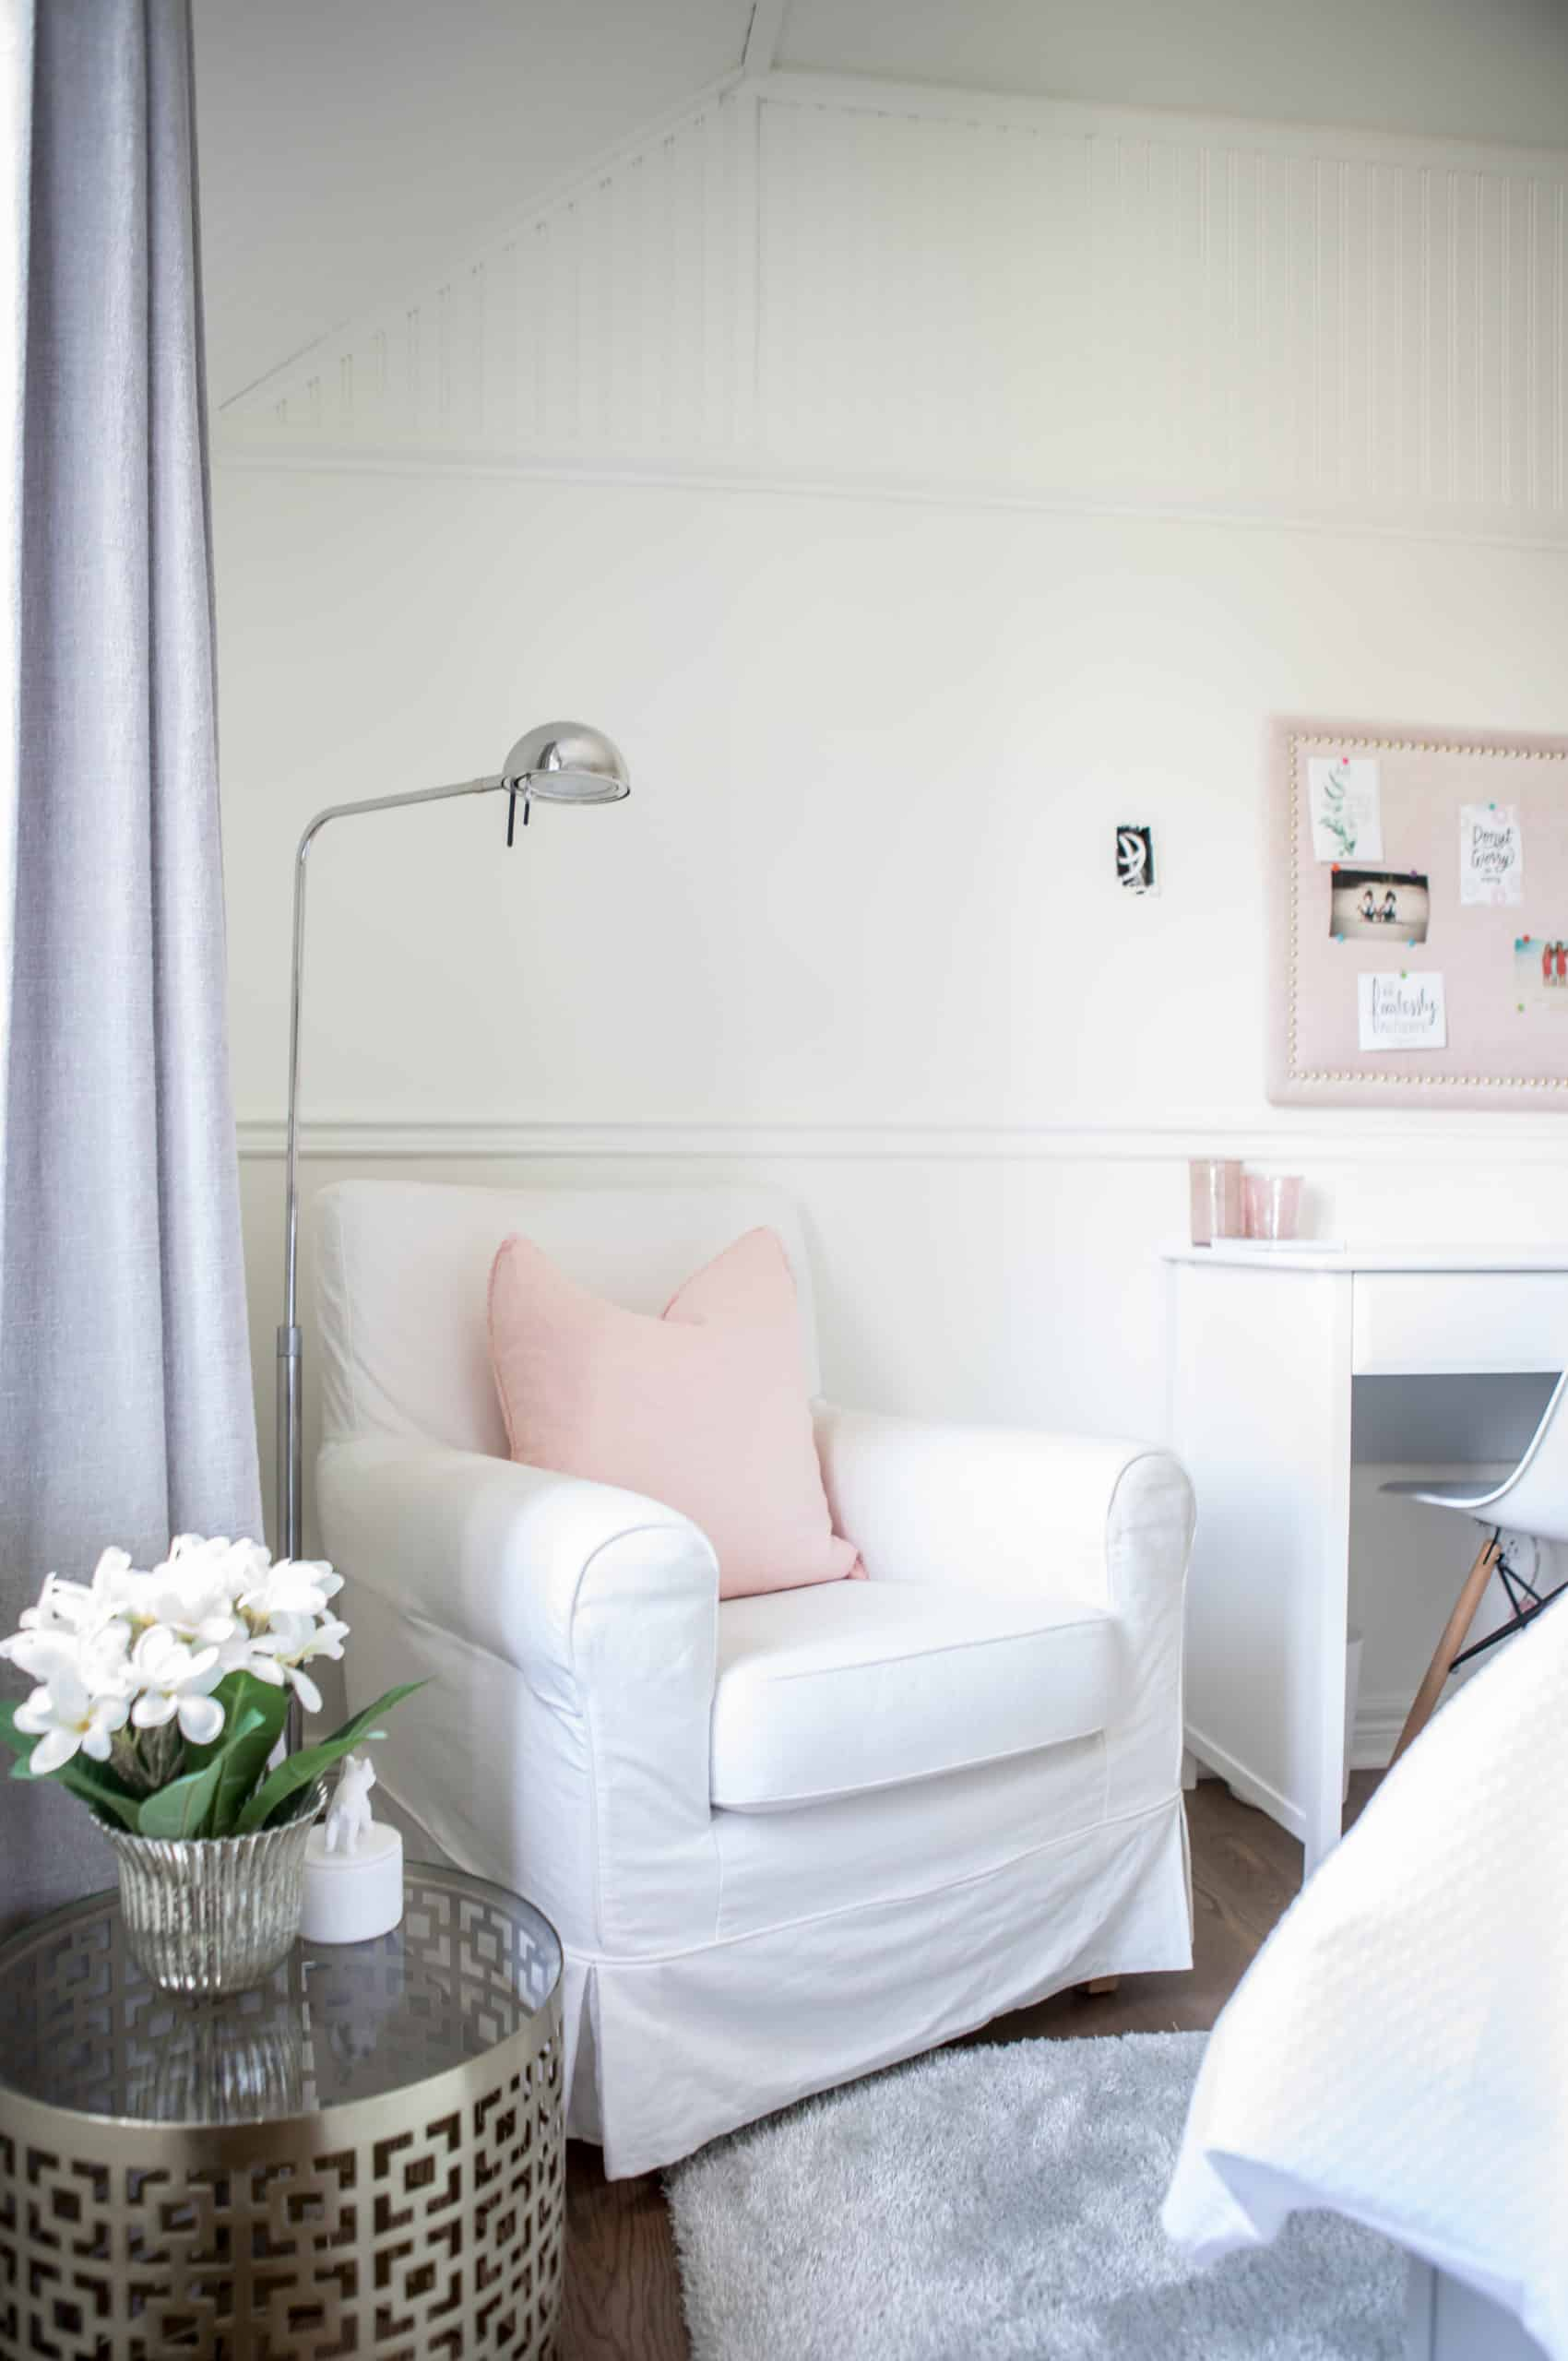 Bright white chair with a pink pillow on it